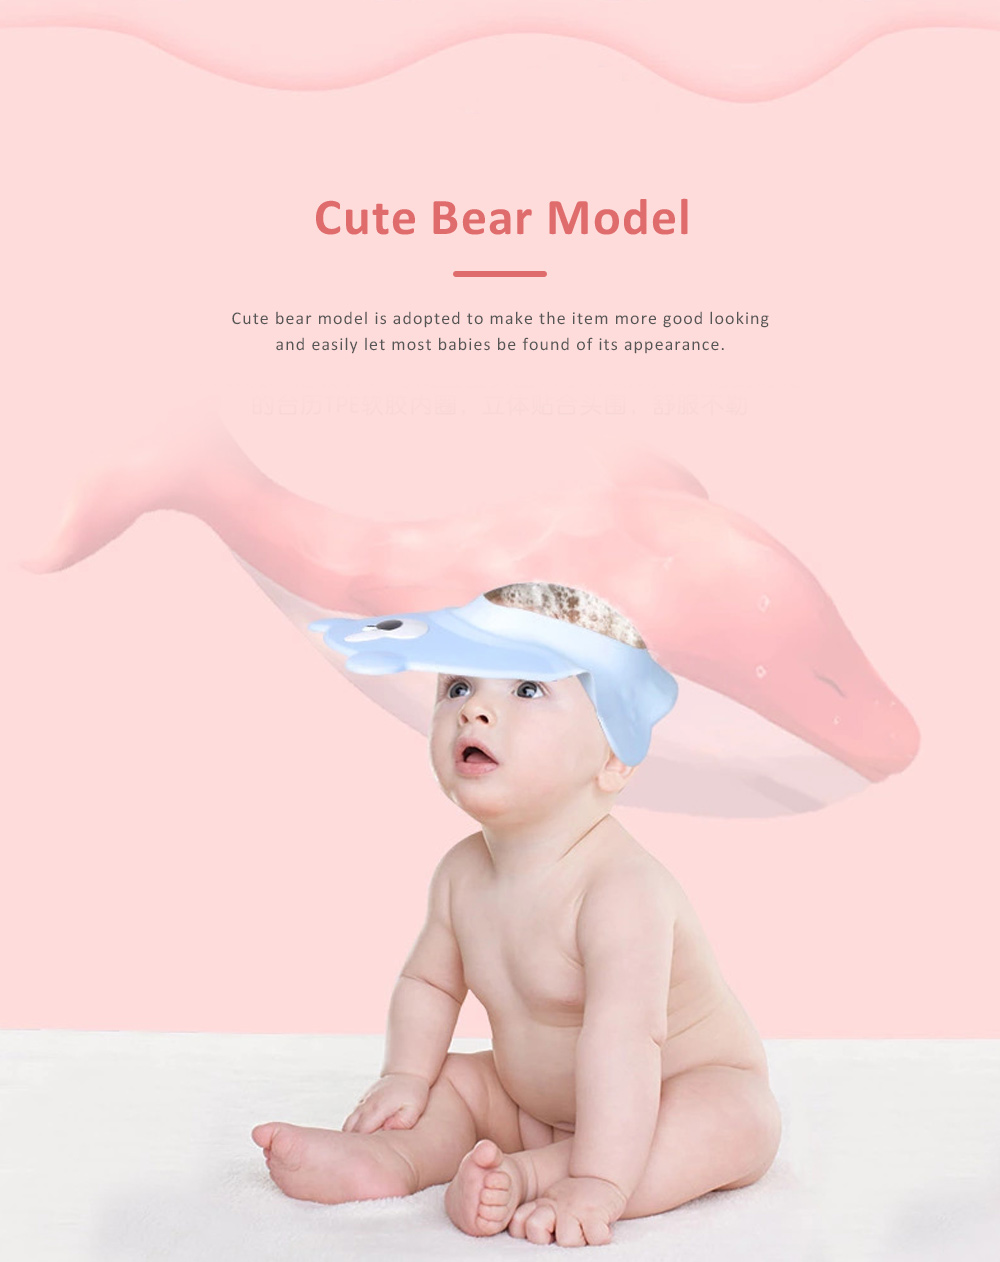 Baby Shampoo Cap for Infant, Toddlers, Newborns, Adjustable Elastic Baby Shower Bathing Ear Eye Protection Cap, Soft TPE PP Safe Shampoo Hat for Baby Children 3